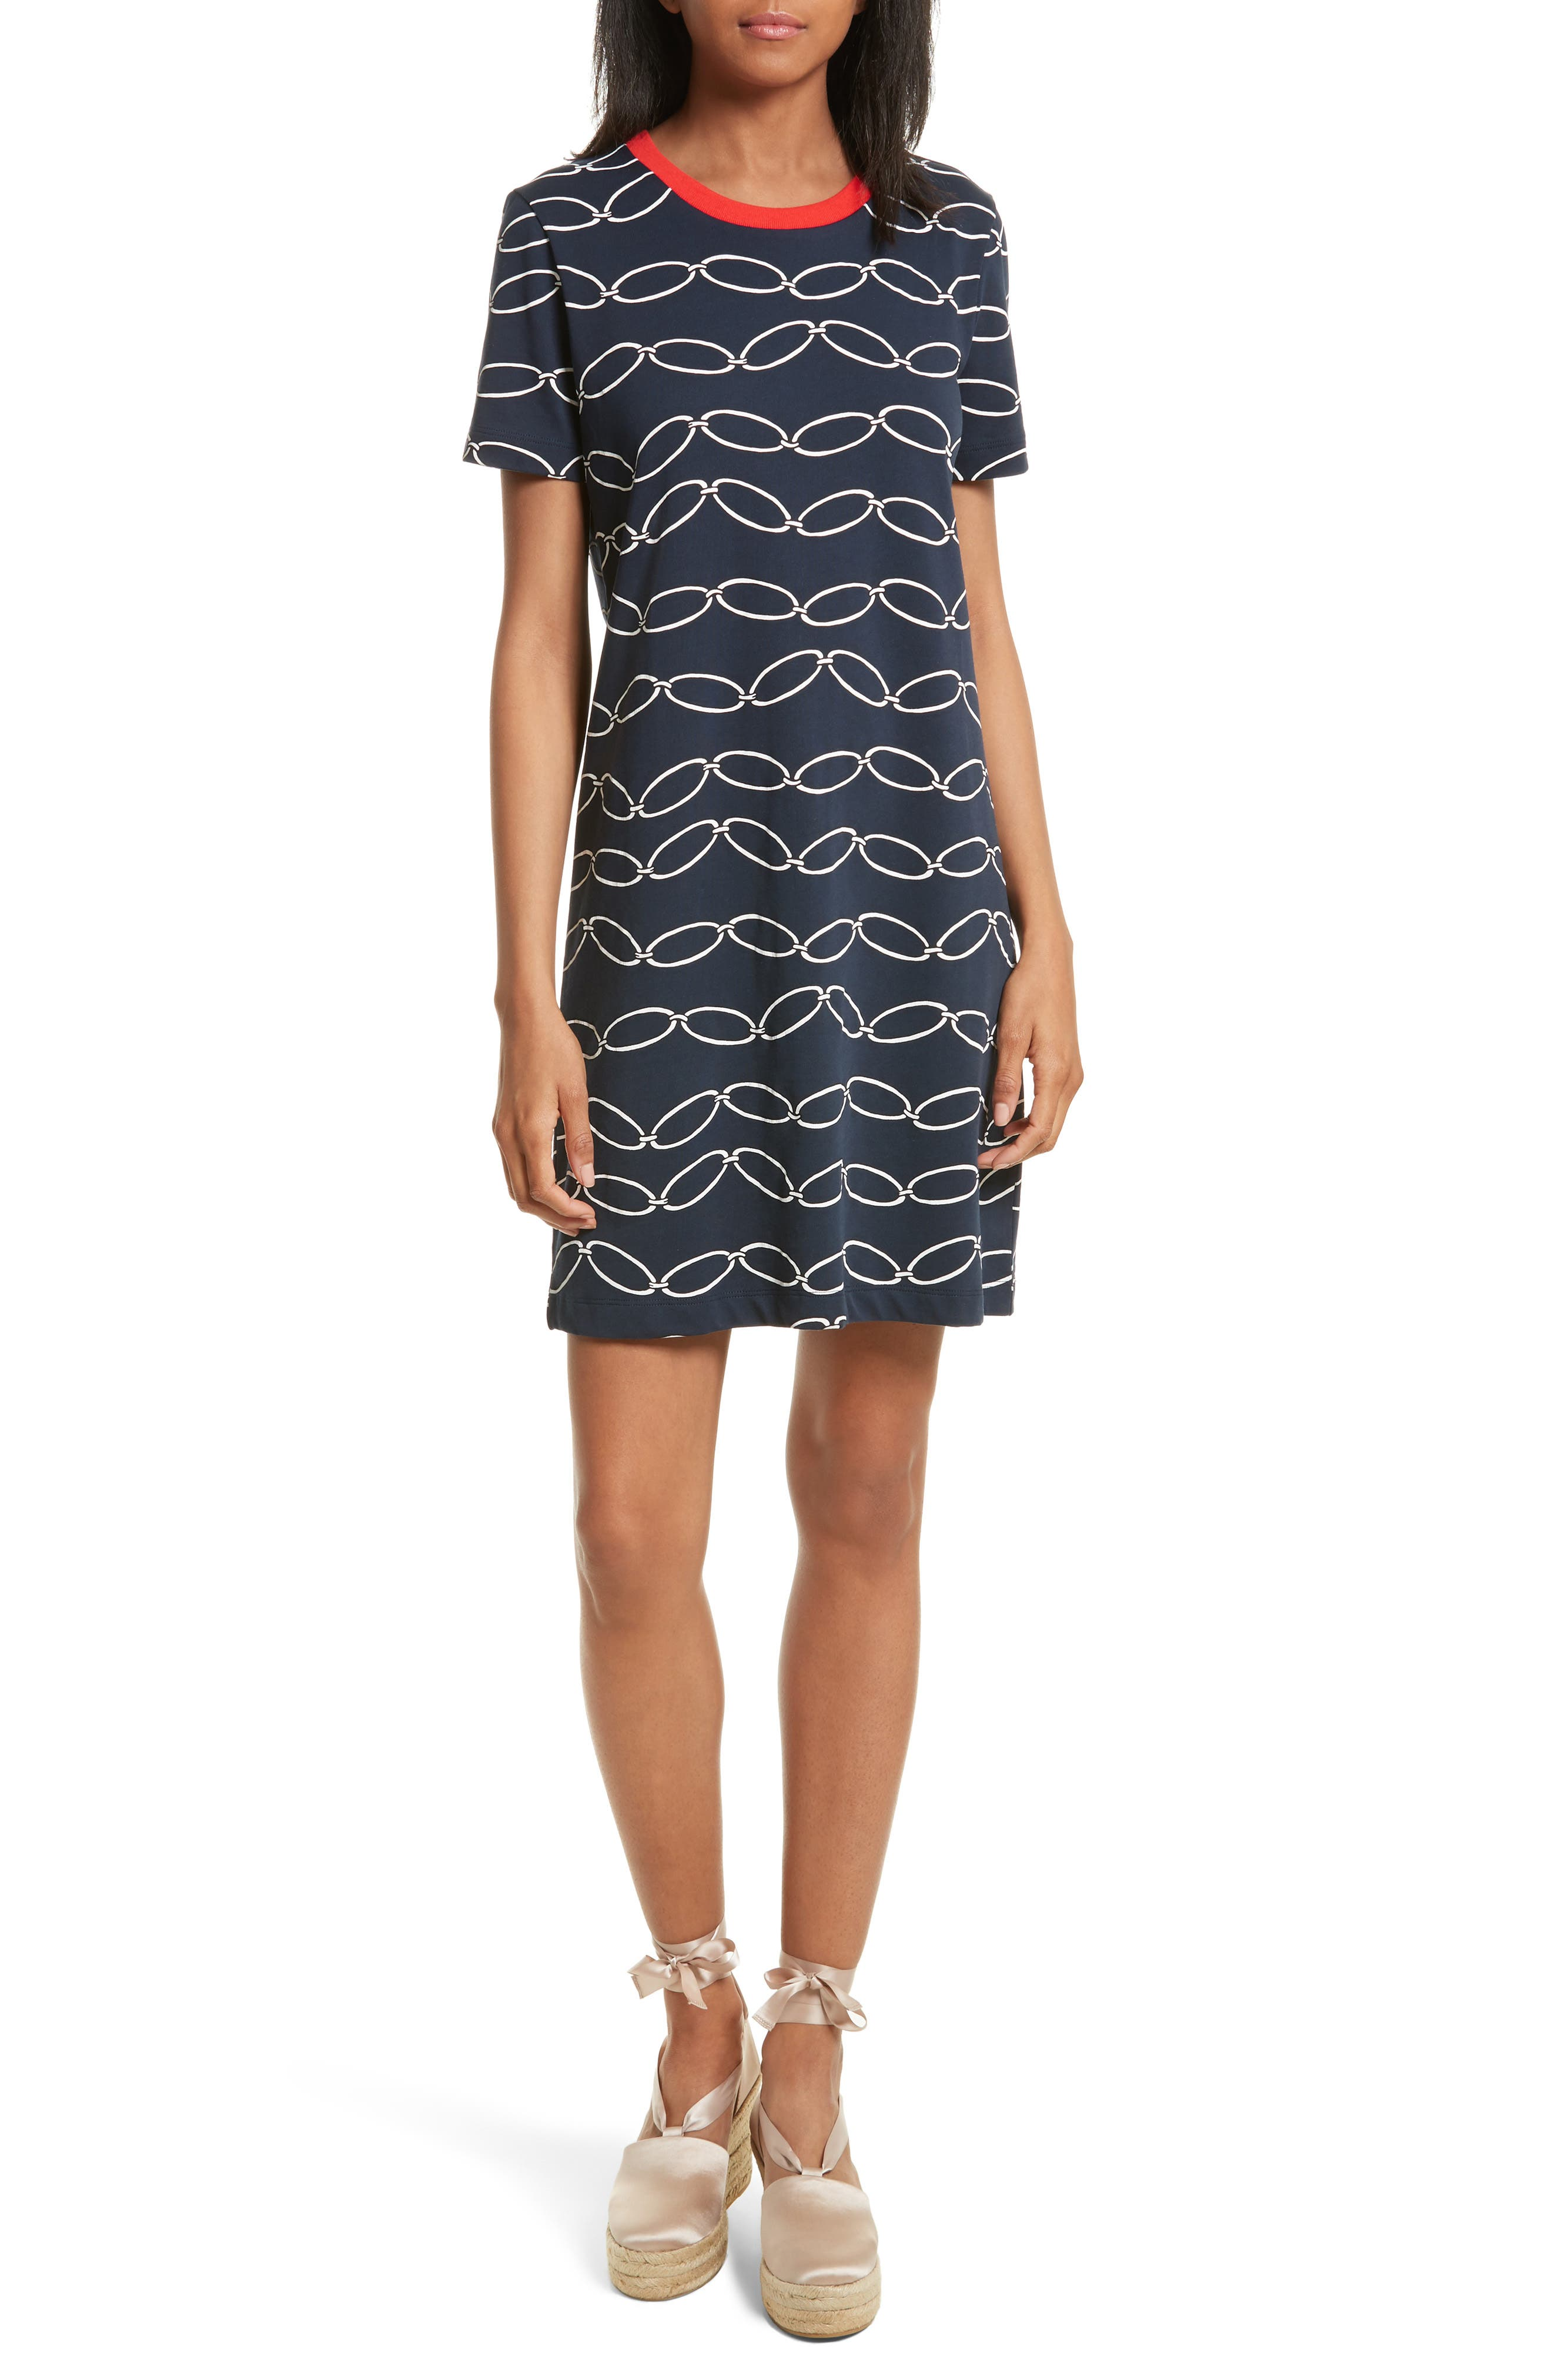 Tory Burch Michaela Print T-Shirt Dress